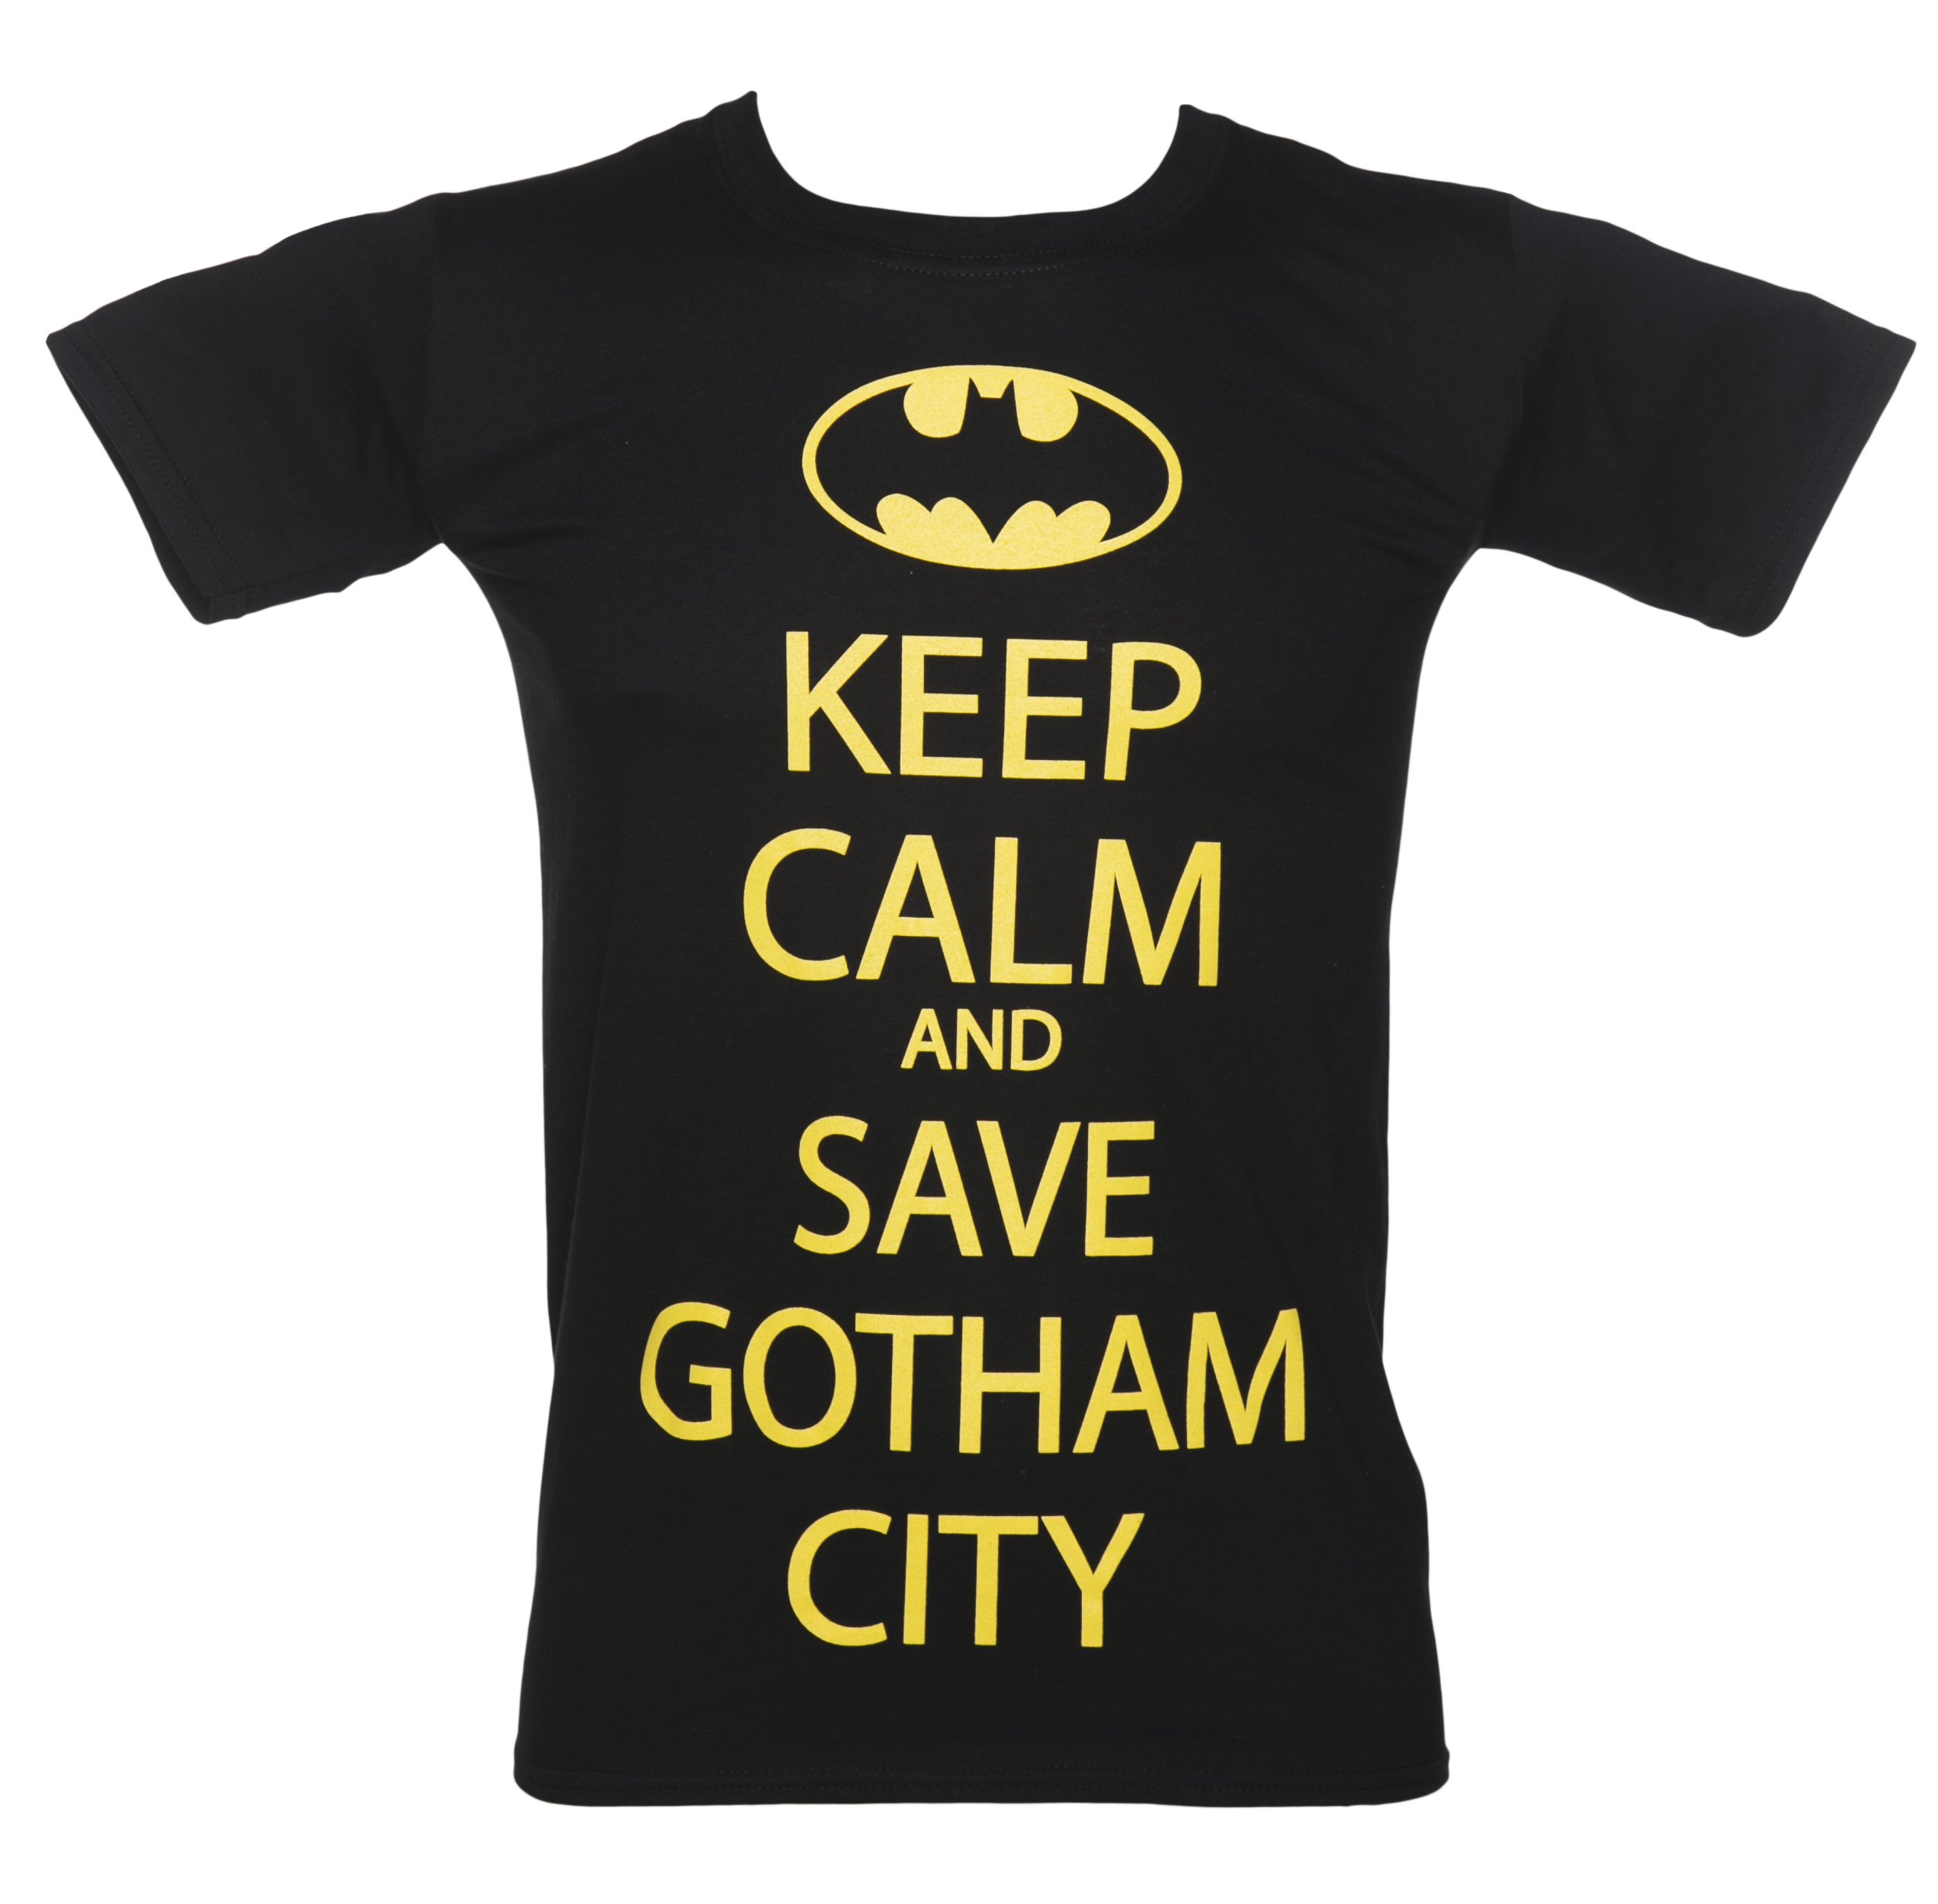 Keep calm and love winnie pooh keep calm and carry on image - Men S Black Keep Calm And Save Gotham City Dc Comics Batman T Shirt Made From 100 Cotton Black Crew Neck T Shirt Please Check Our Custom Size Chart